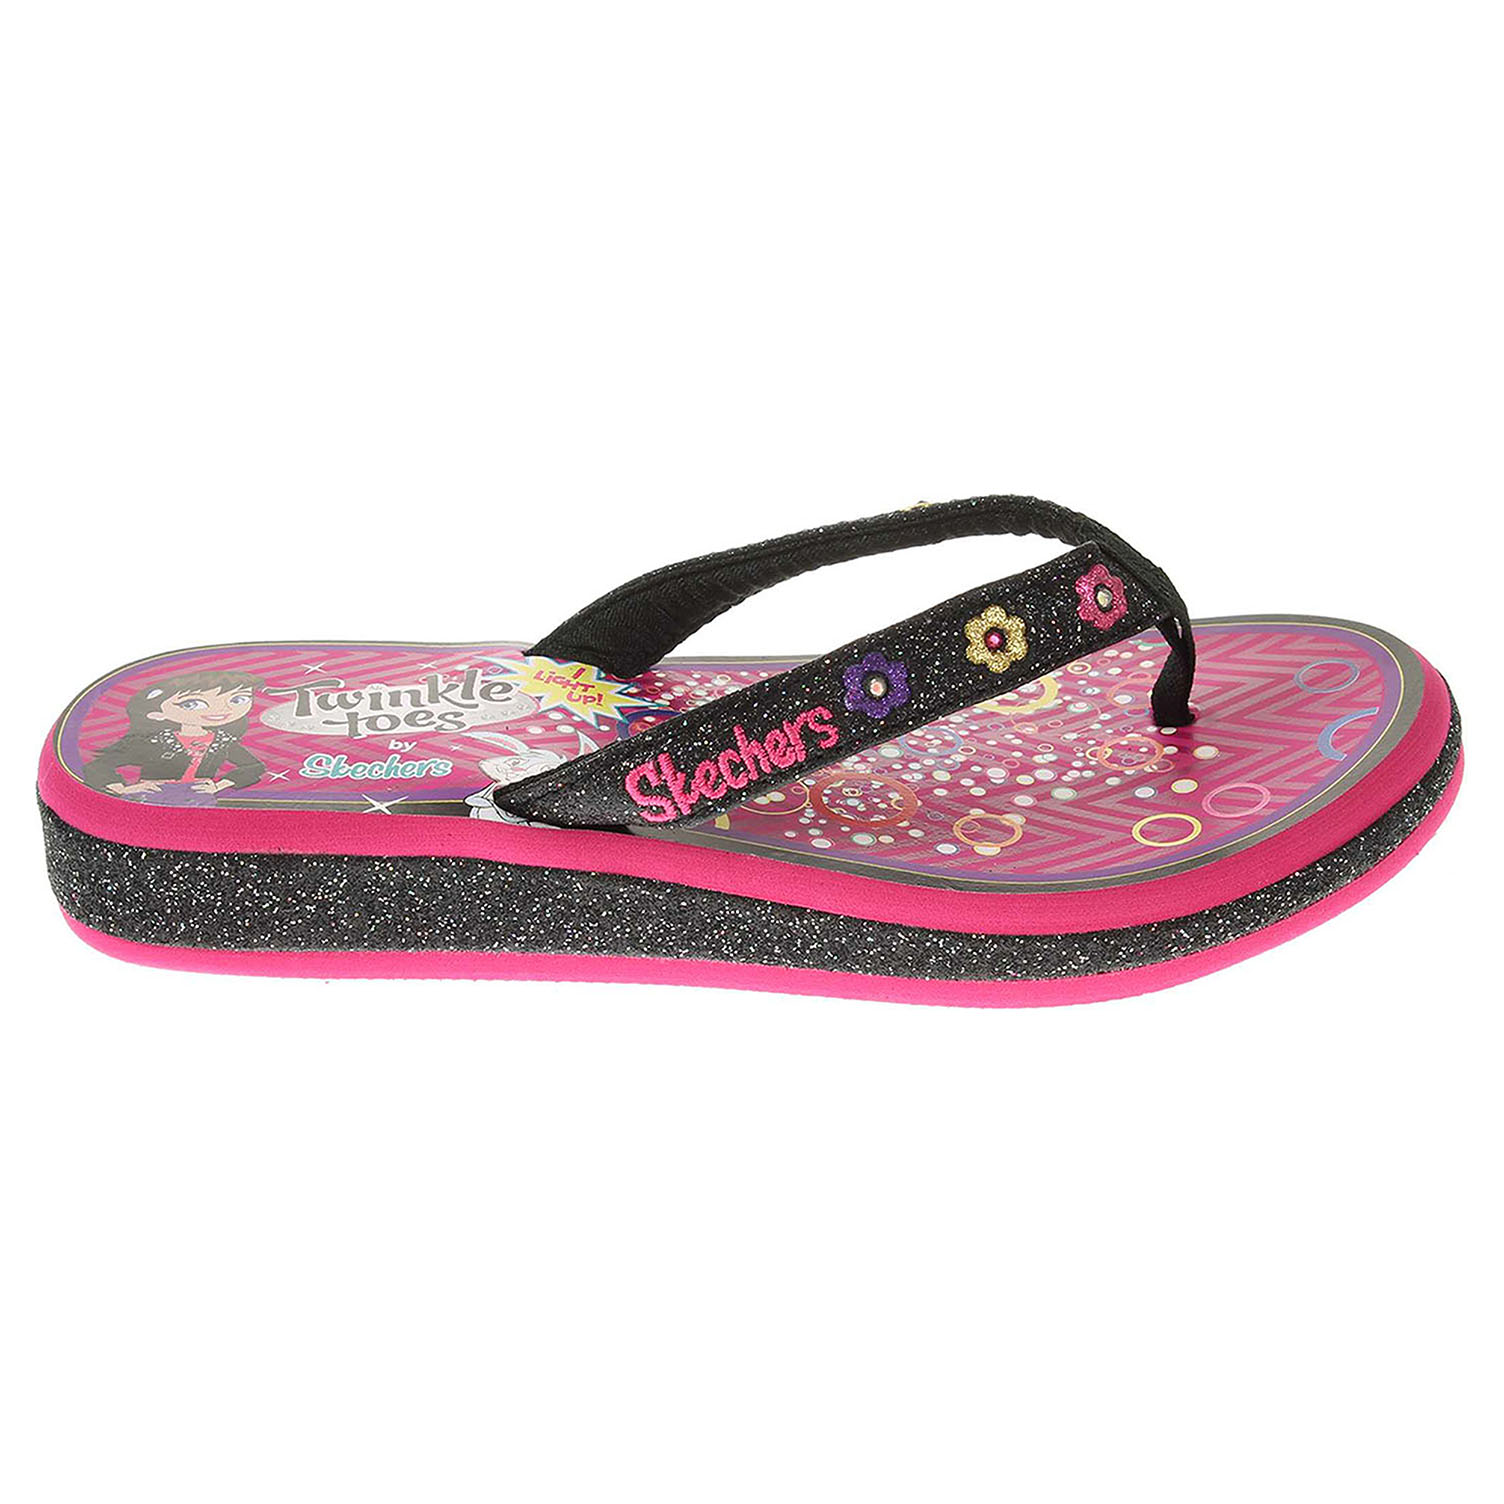 Skechers Summerglow bl/hot pink